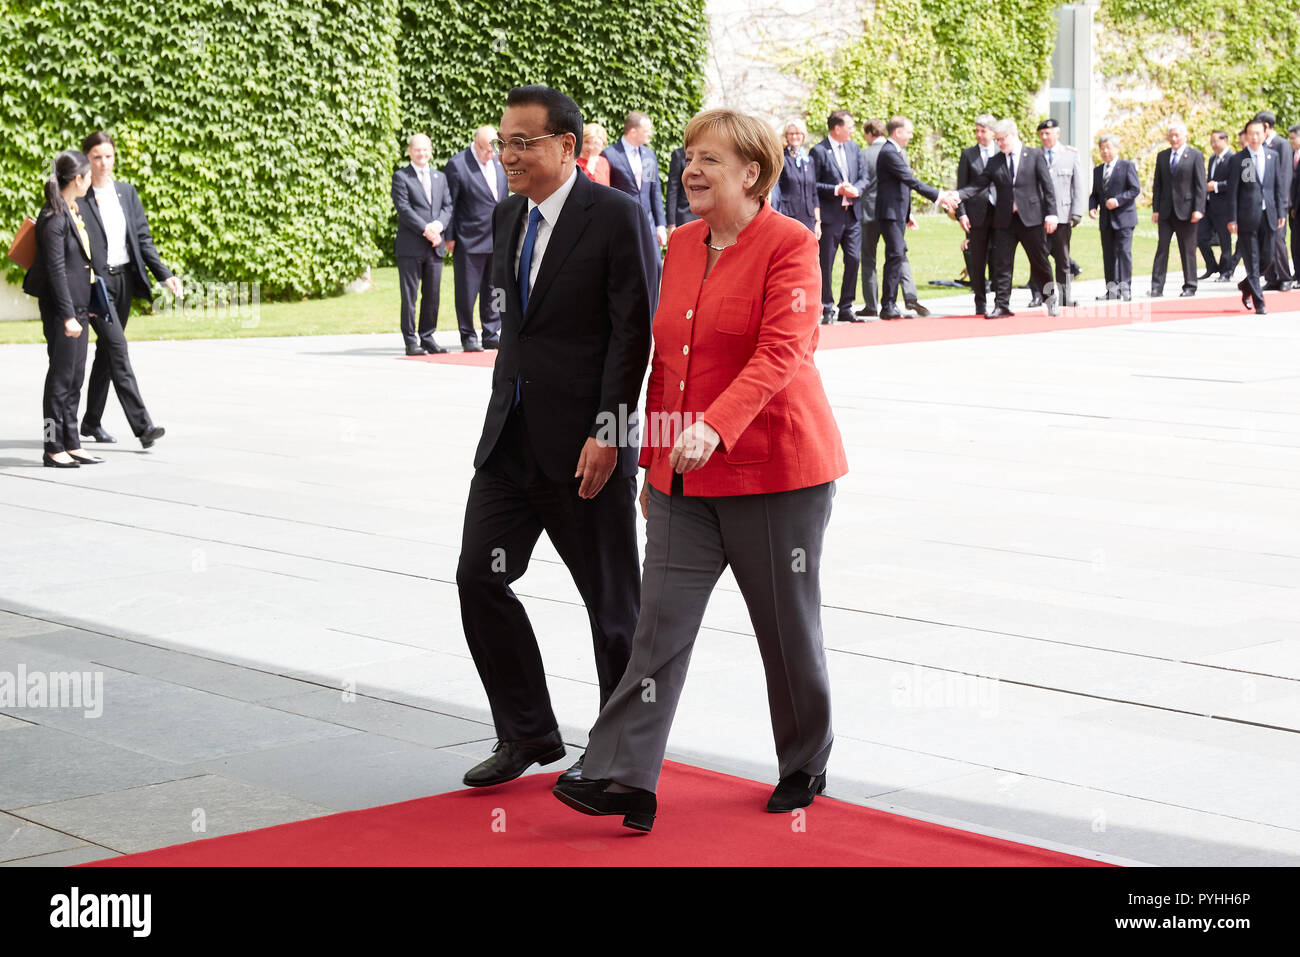 Berlin, Germany - Chancellor Angela Merkel and Chinese Prime Minister Li Keqiang leave the Chancellor's Court of Honour after receiving military honours. - Stock Image